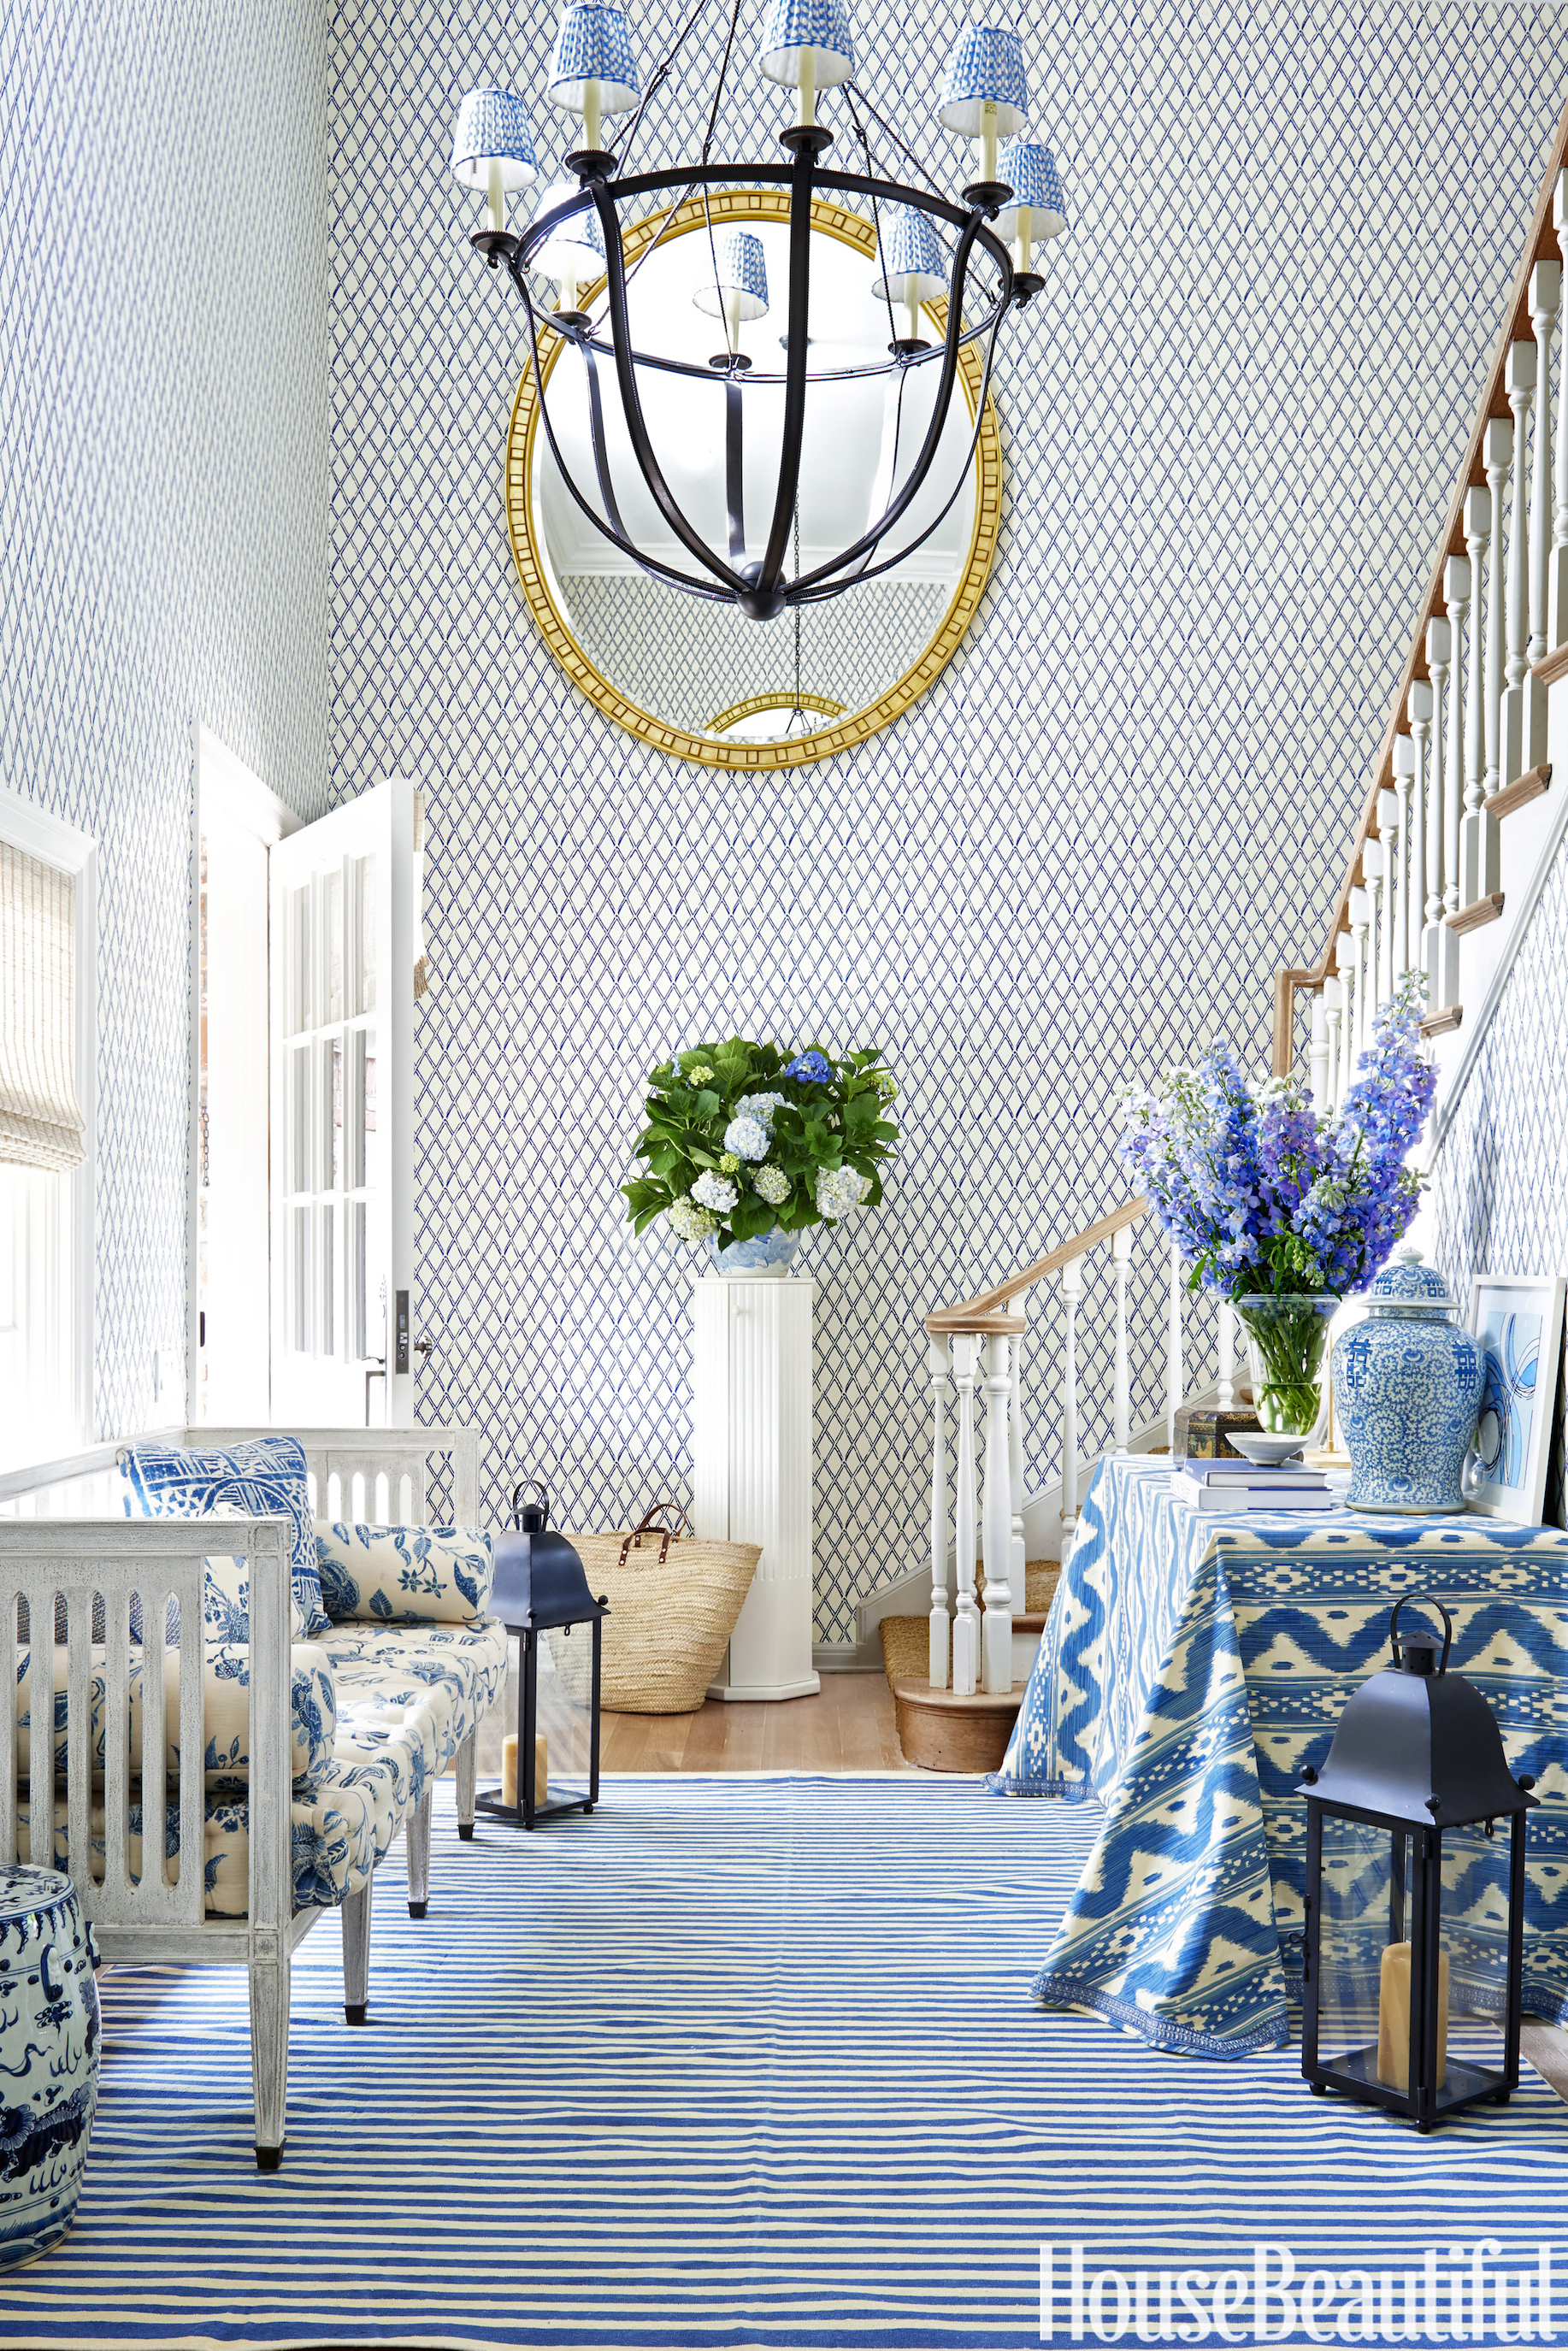 70+ Foyer Decorating Ideas - Design Pictures of Foyers ...